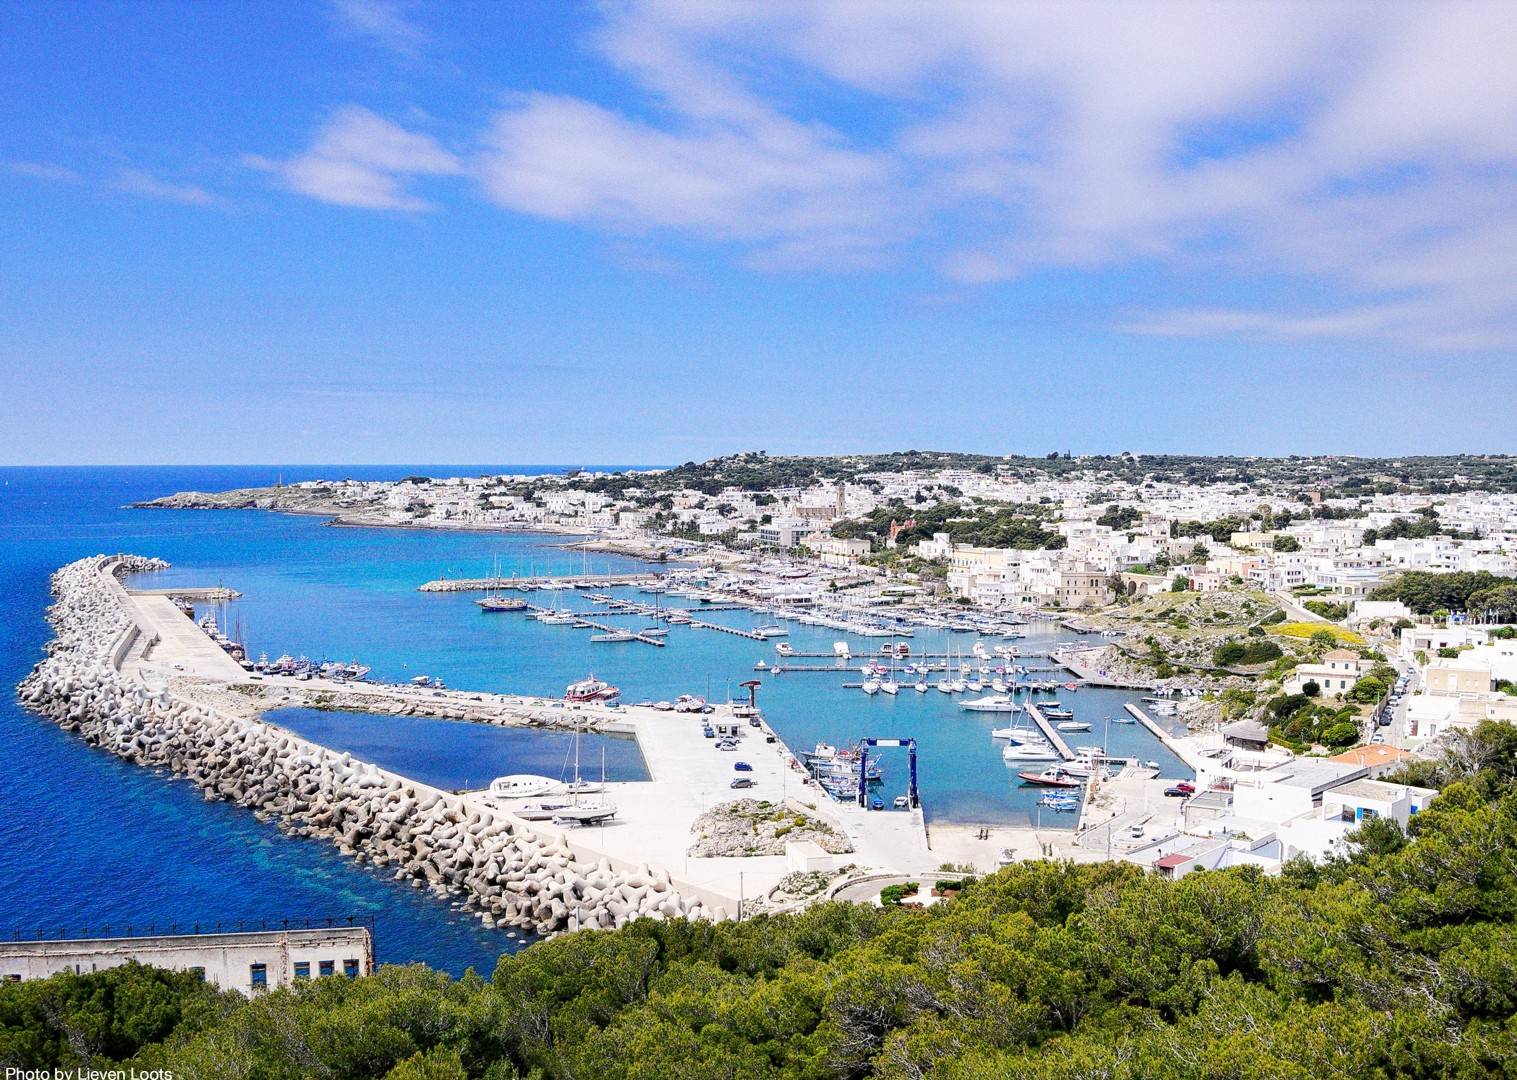 puglia-coast-marina-italy-cycling-holiday.jpg - Italy - Puglia - The Heel of Italy - Self-Guided Road Cycling Holiday - Italia Road Cycling